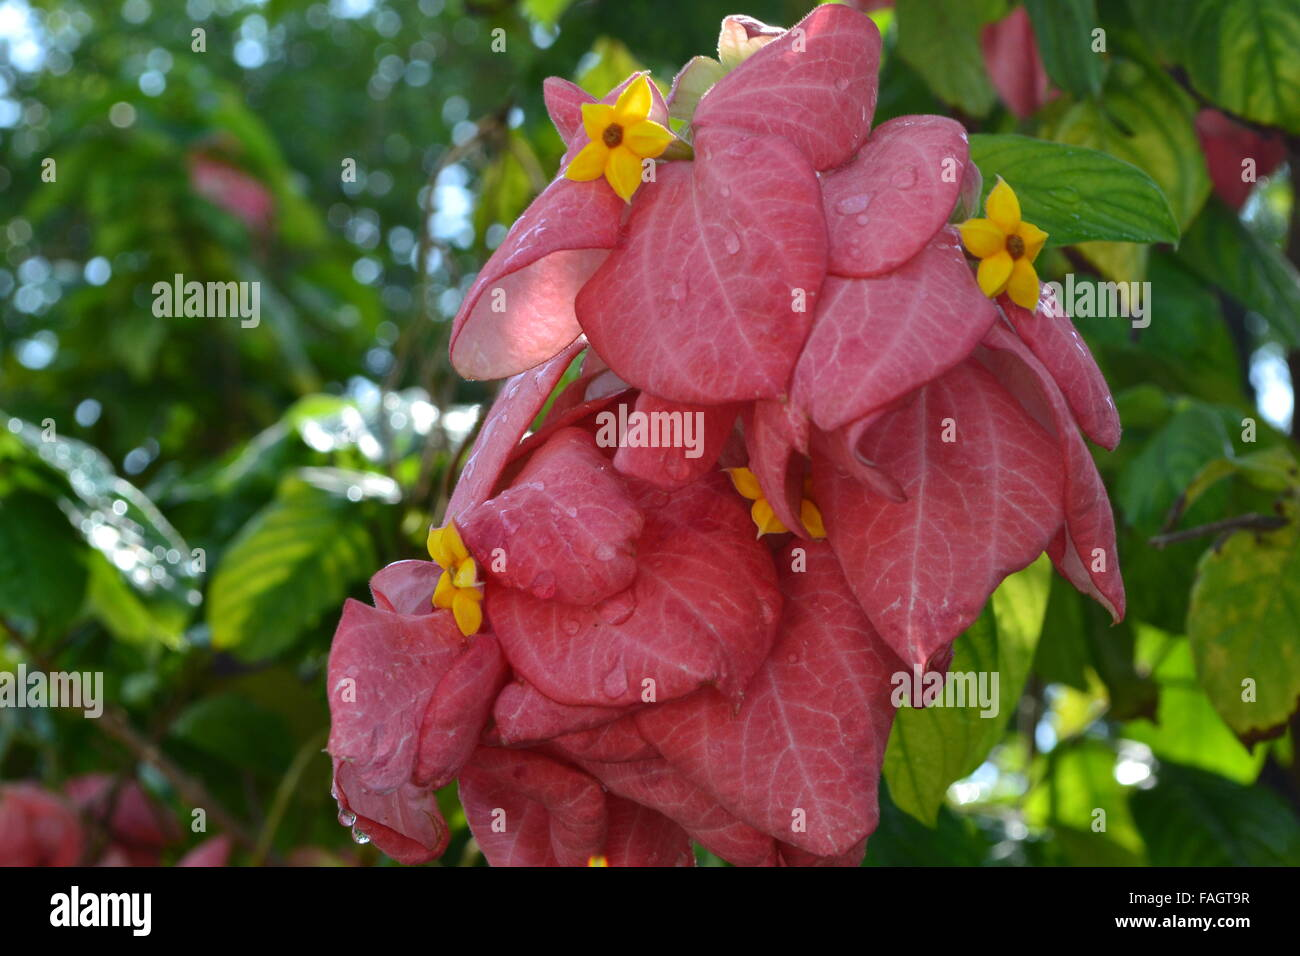 Pretty Red Flowers With Green Leaves In Garden Stock Photo 92568723